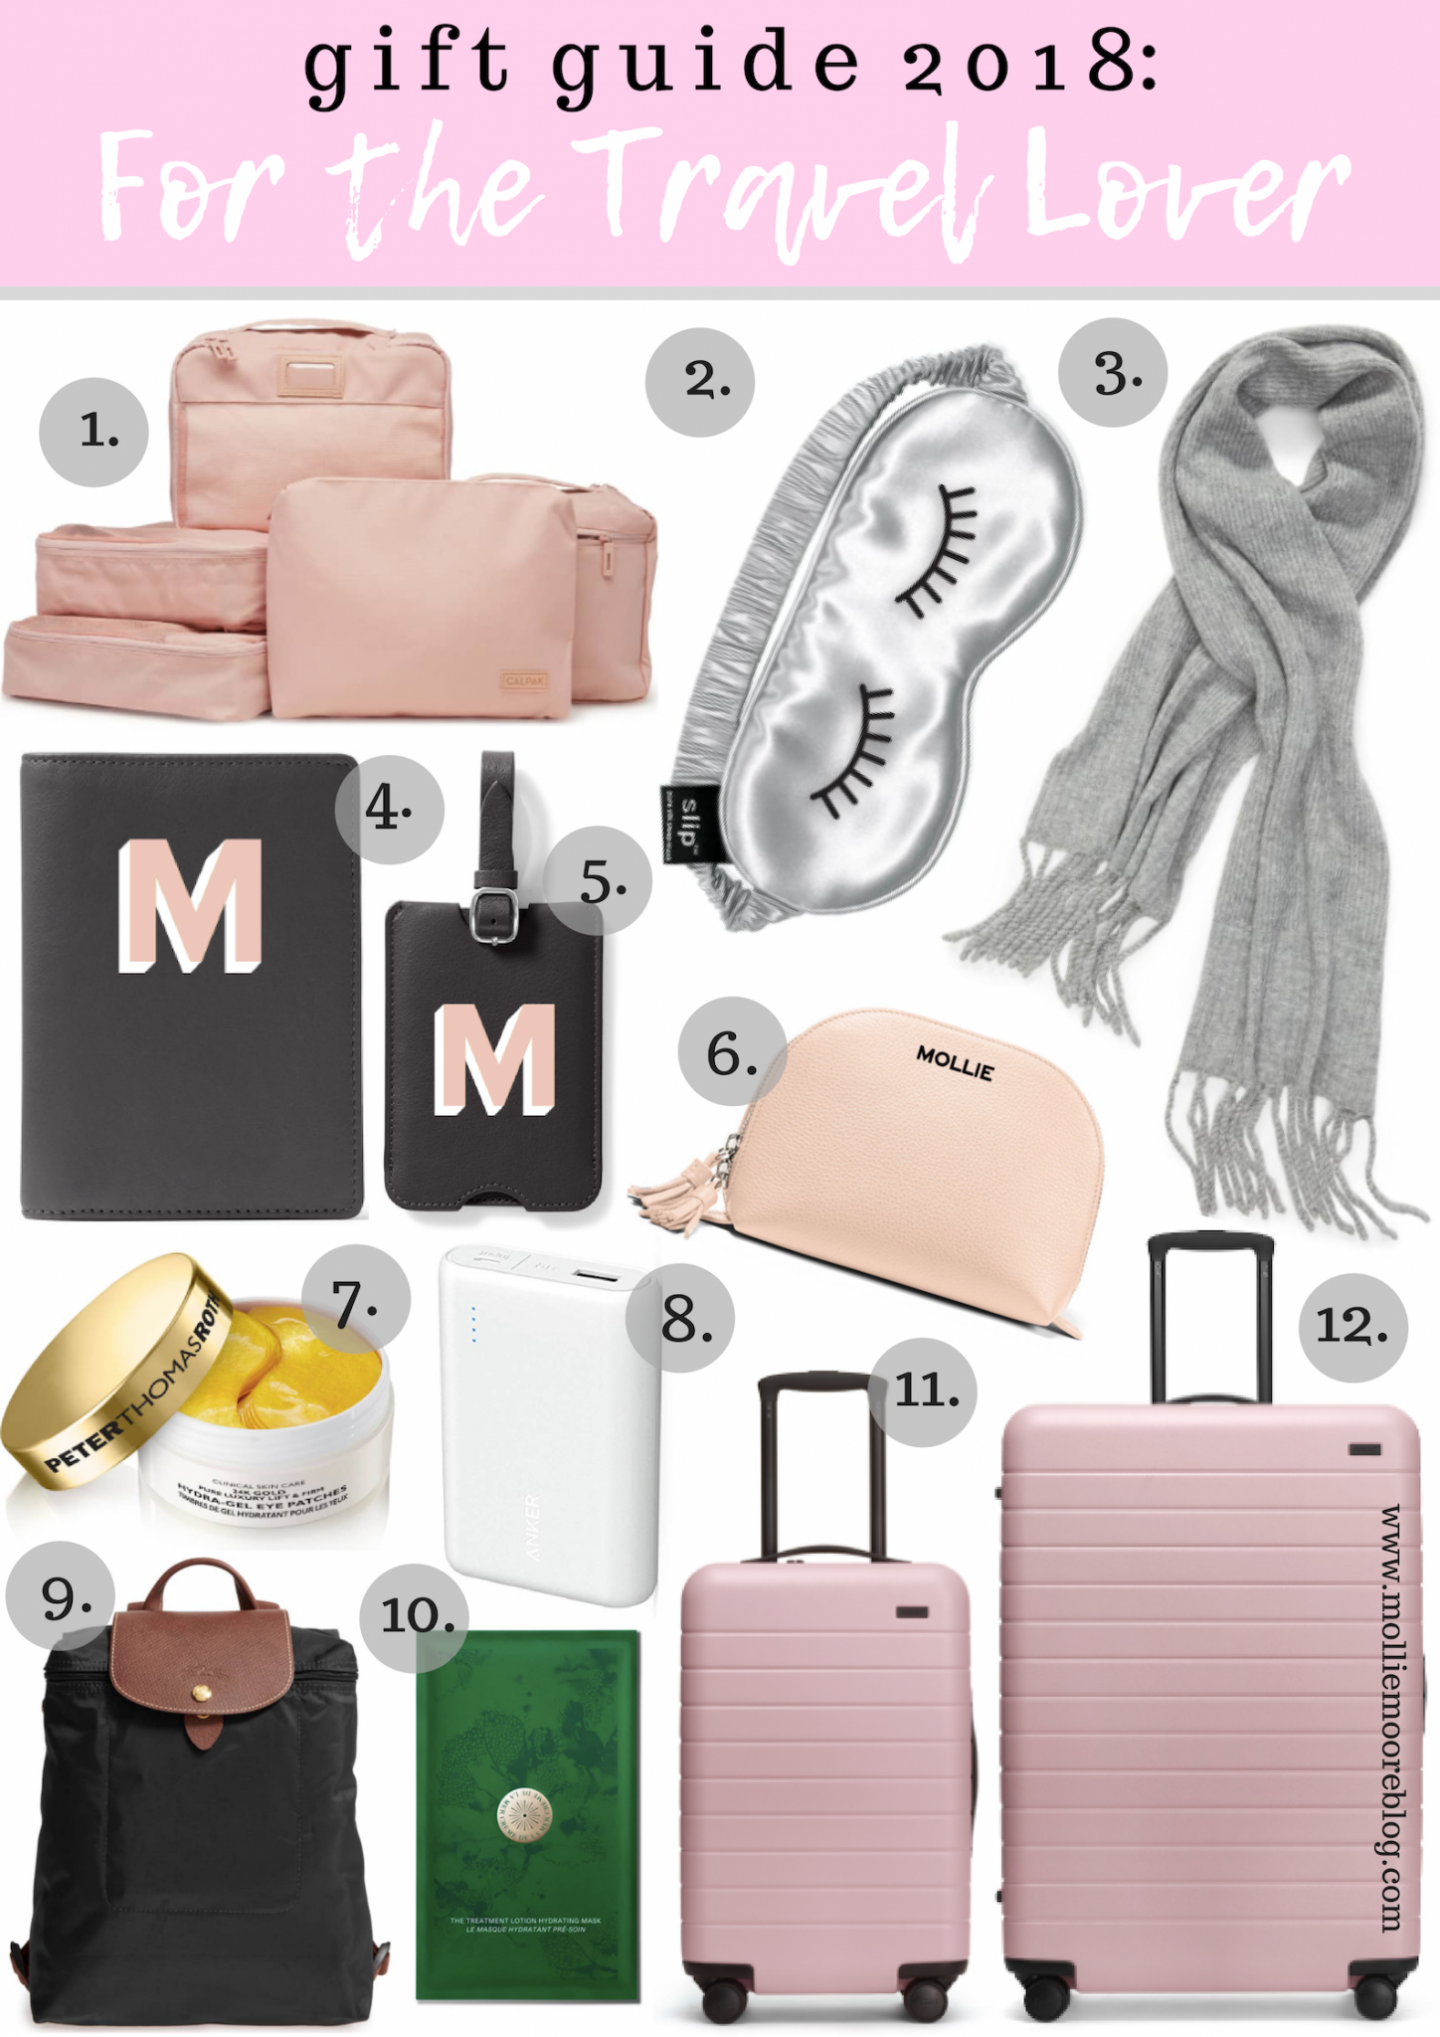 Lifestyle blogger Mollie Moore shares a gift guide for travel lovers